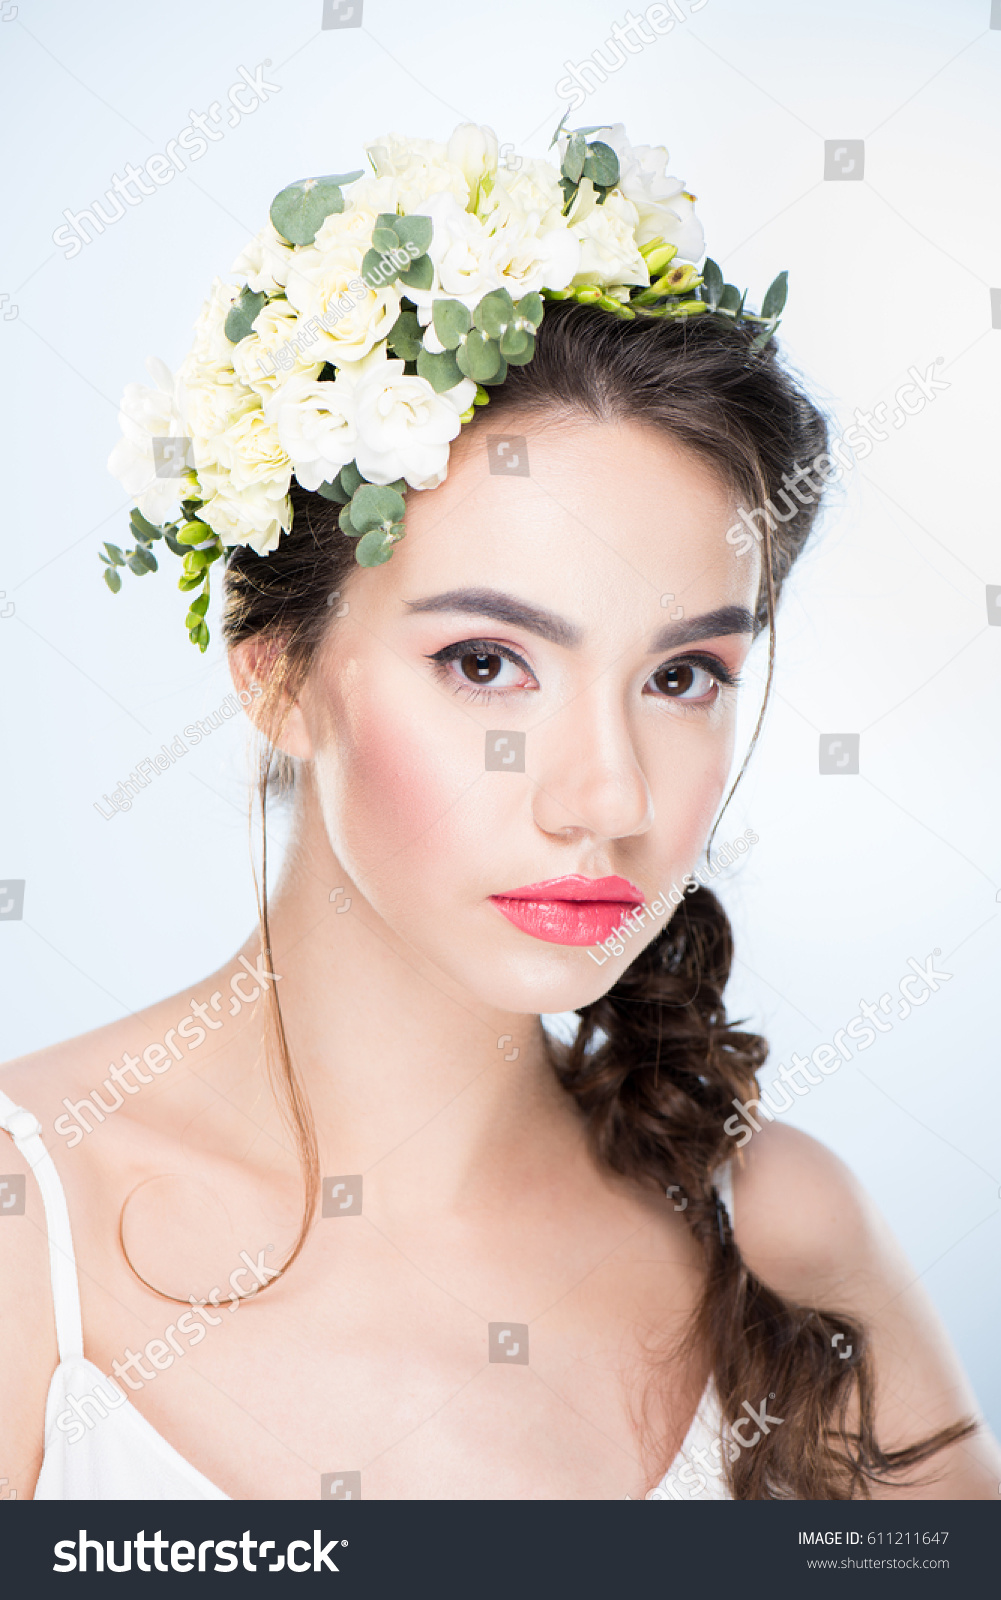 Portrait Of Serious Woman With Flowers In Hair Isolated On White